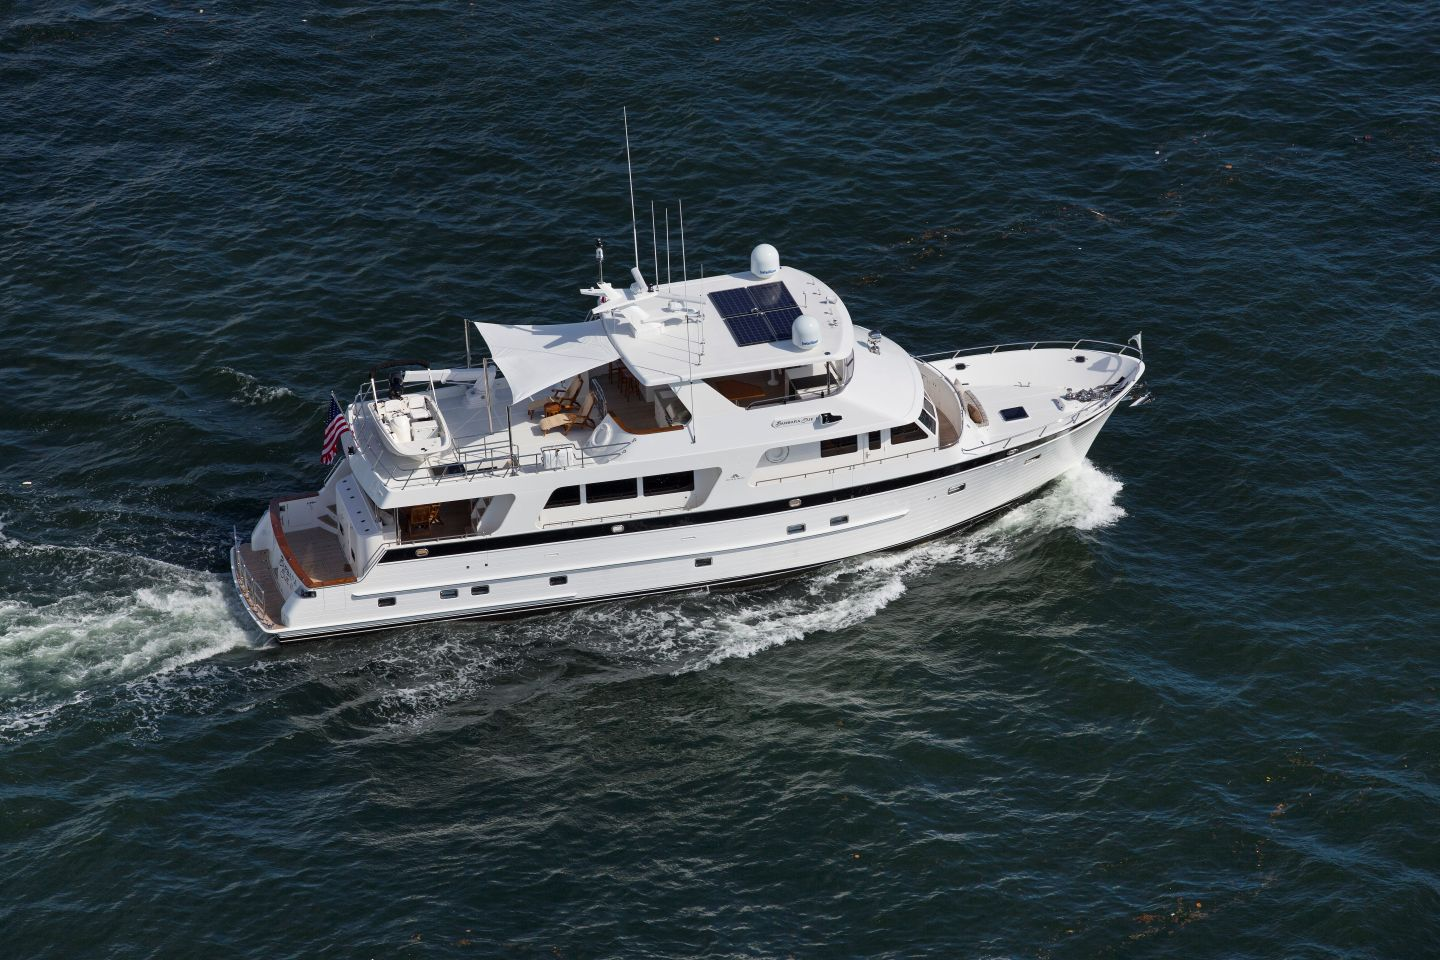 360 VR Virtual Tours of the Outer Reef 820 Cockpit Motoryacht – VRCLOUD